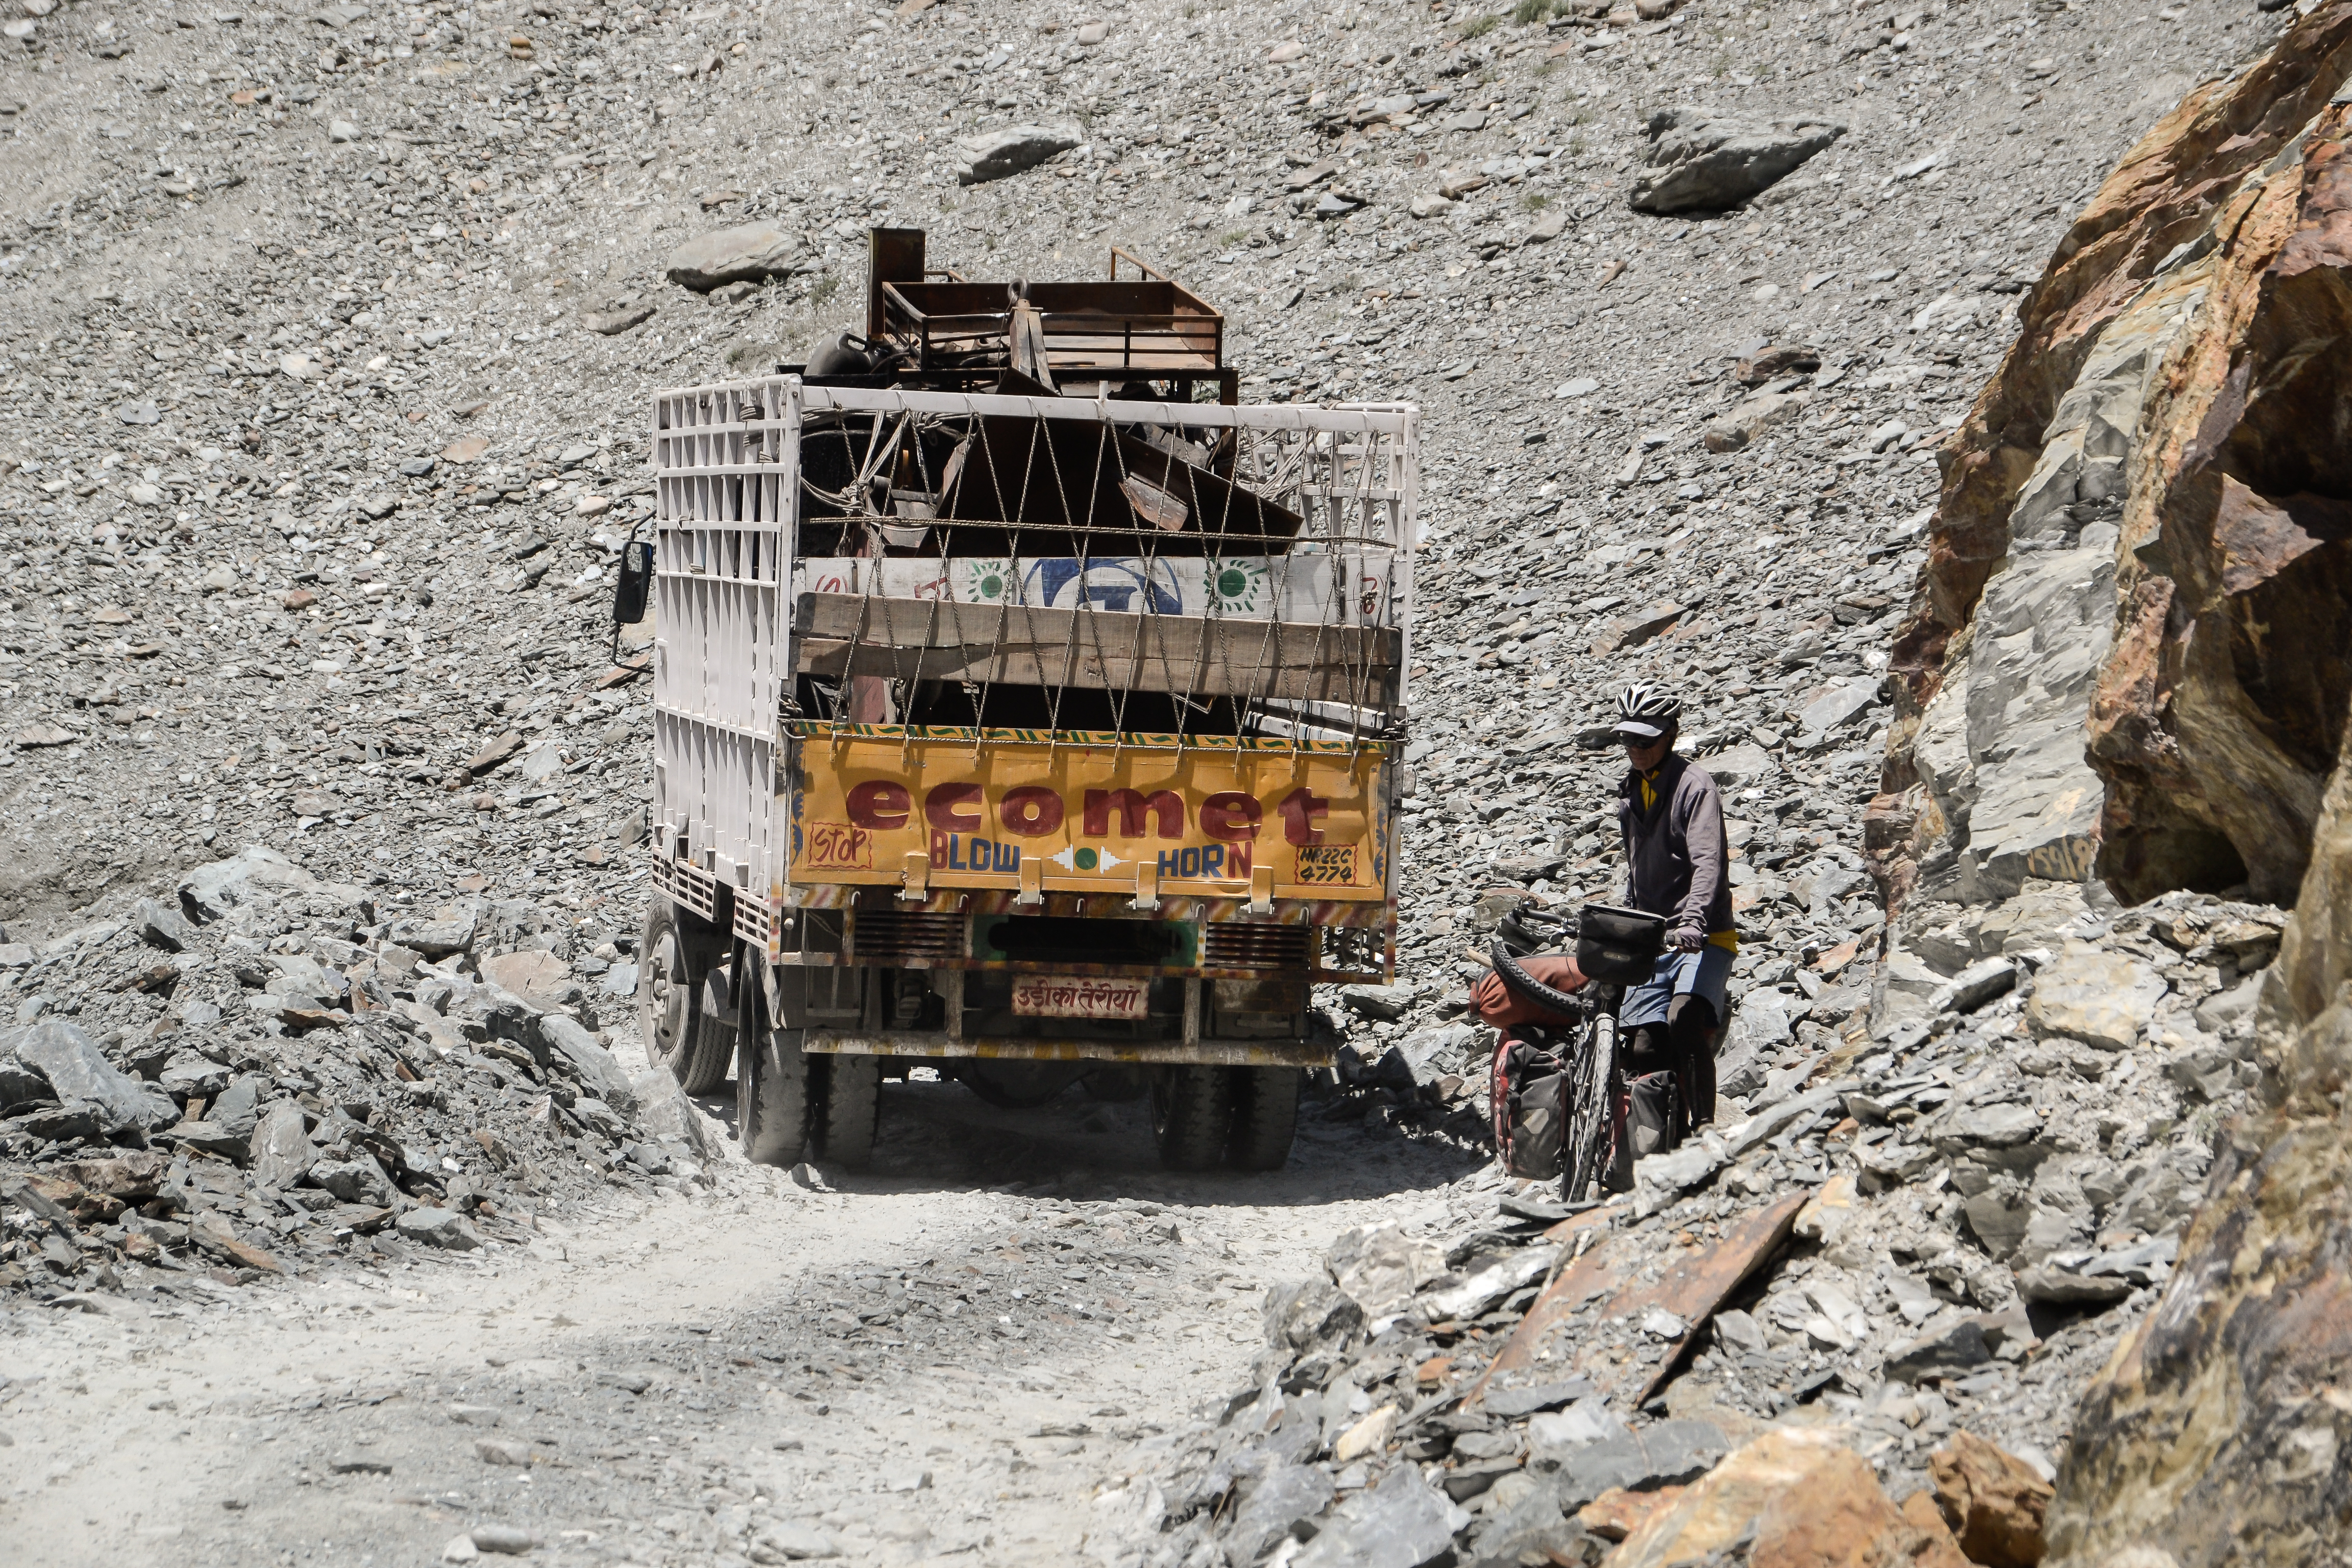 Rough roads in Spiti Valley